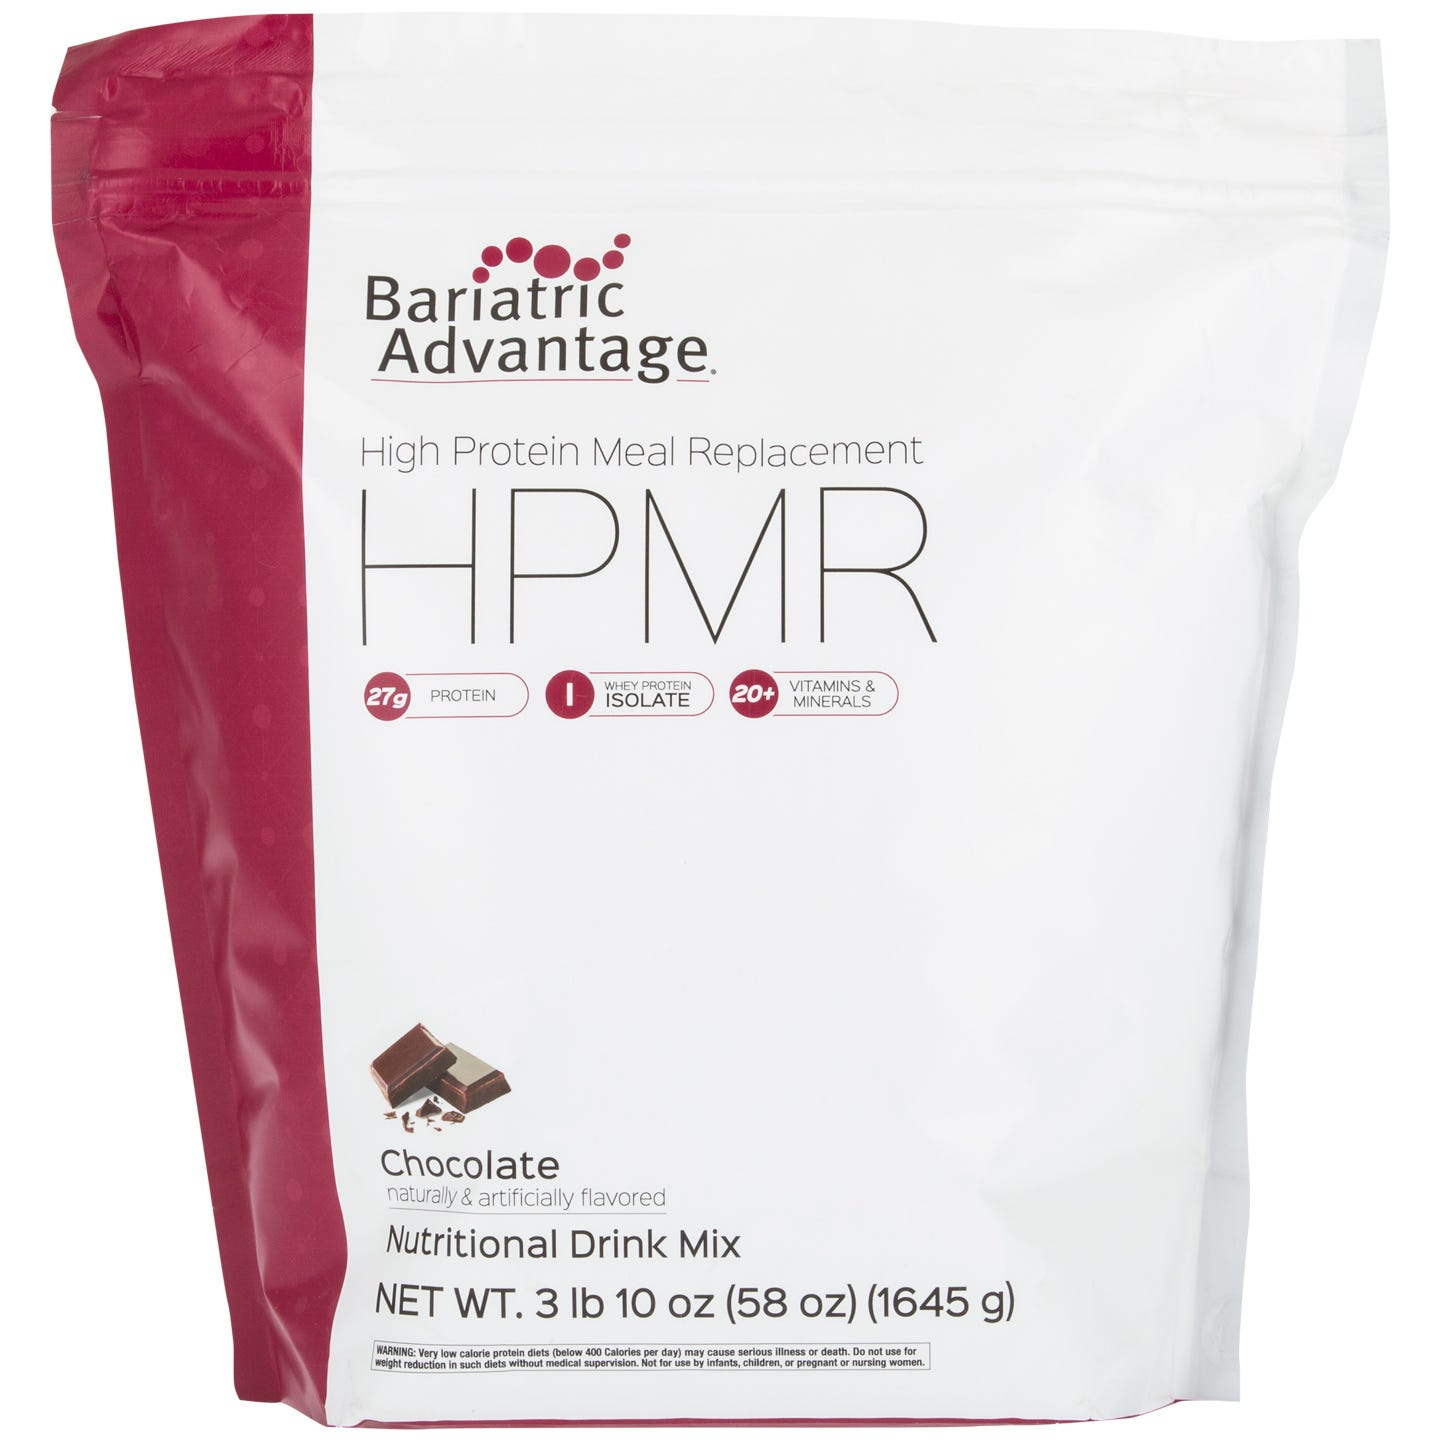 Bariatric Advantage High Protein Meal Replacement, Chocolate (57oz)